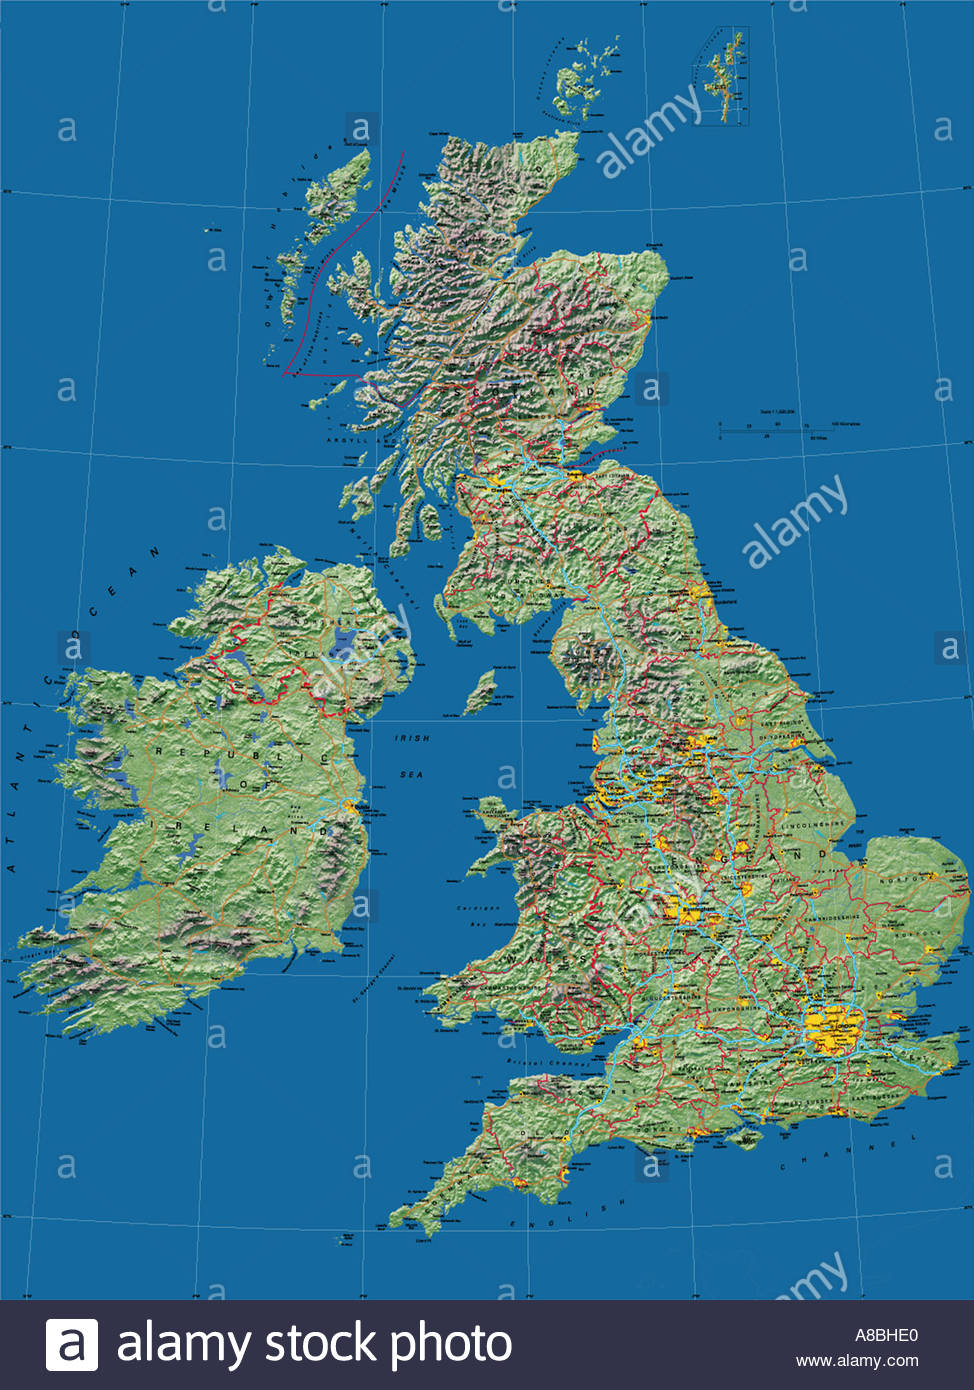 map maps europe united kingdom england wales scotland ireland